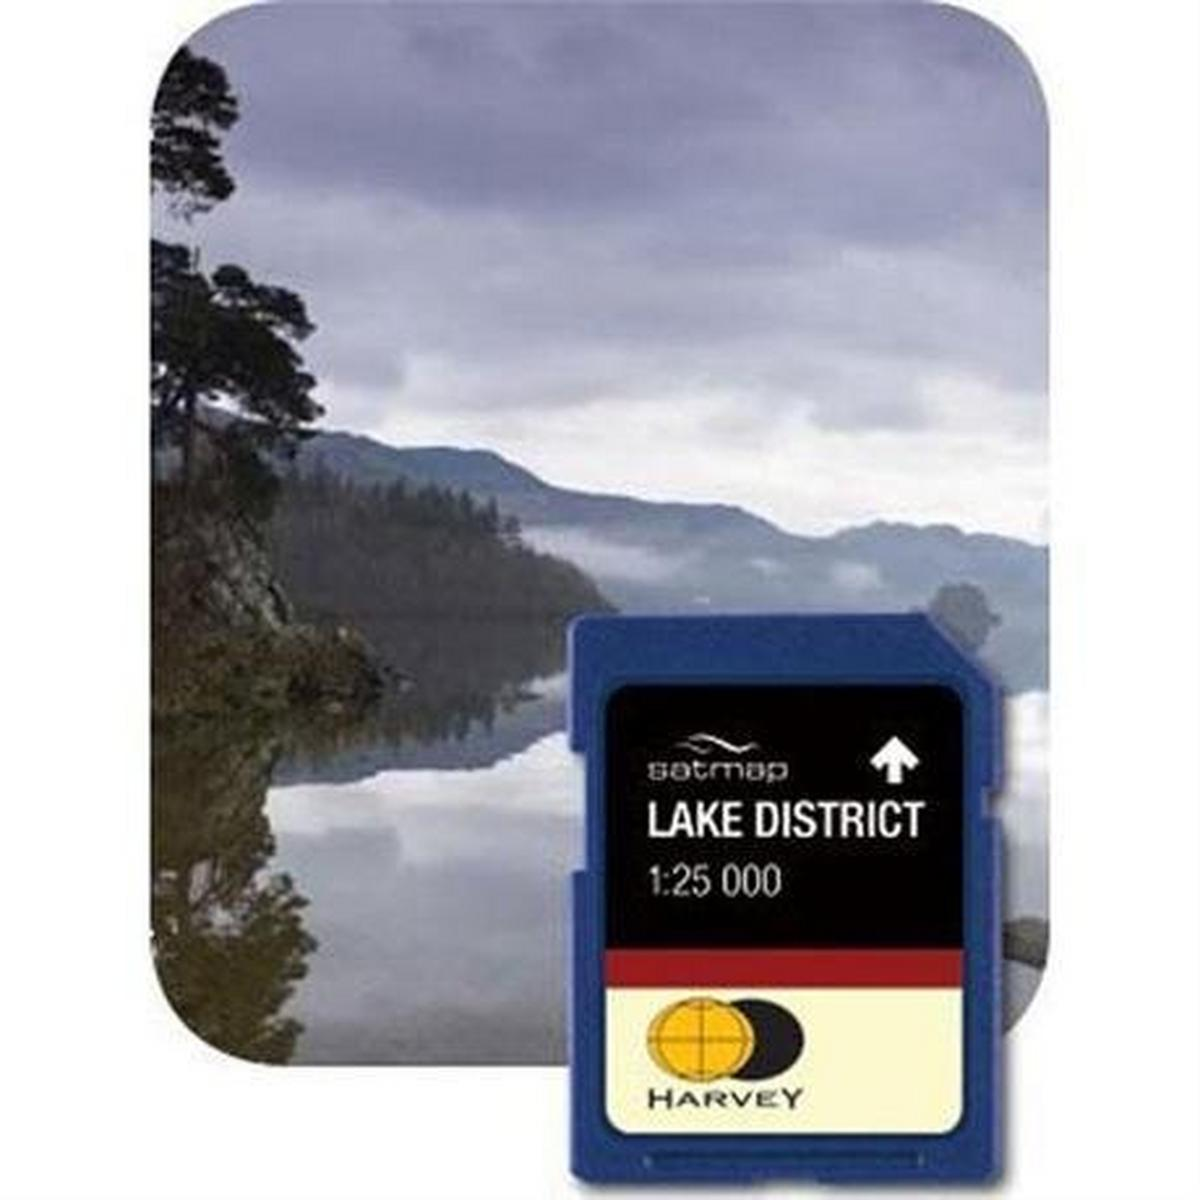 Satmap GPS Spare/Accessory: Mapping Harvey Lake District 1:25,000